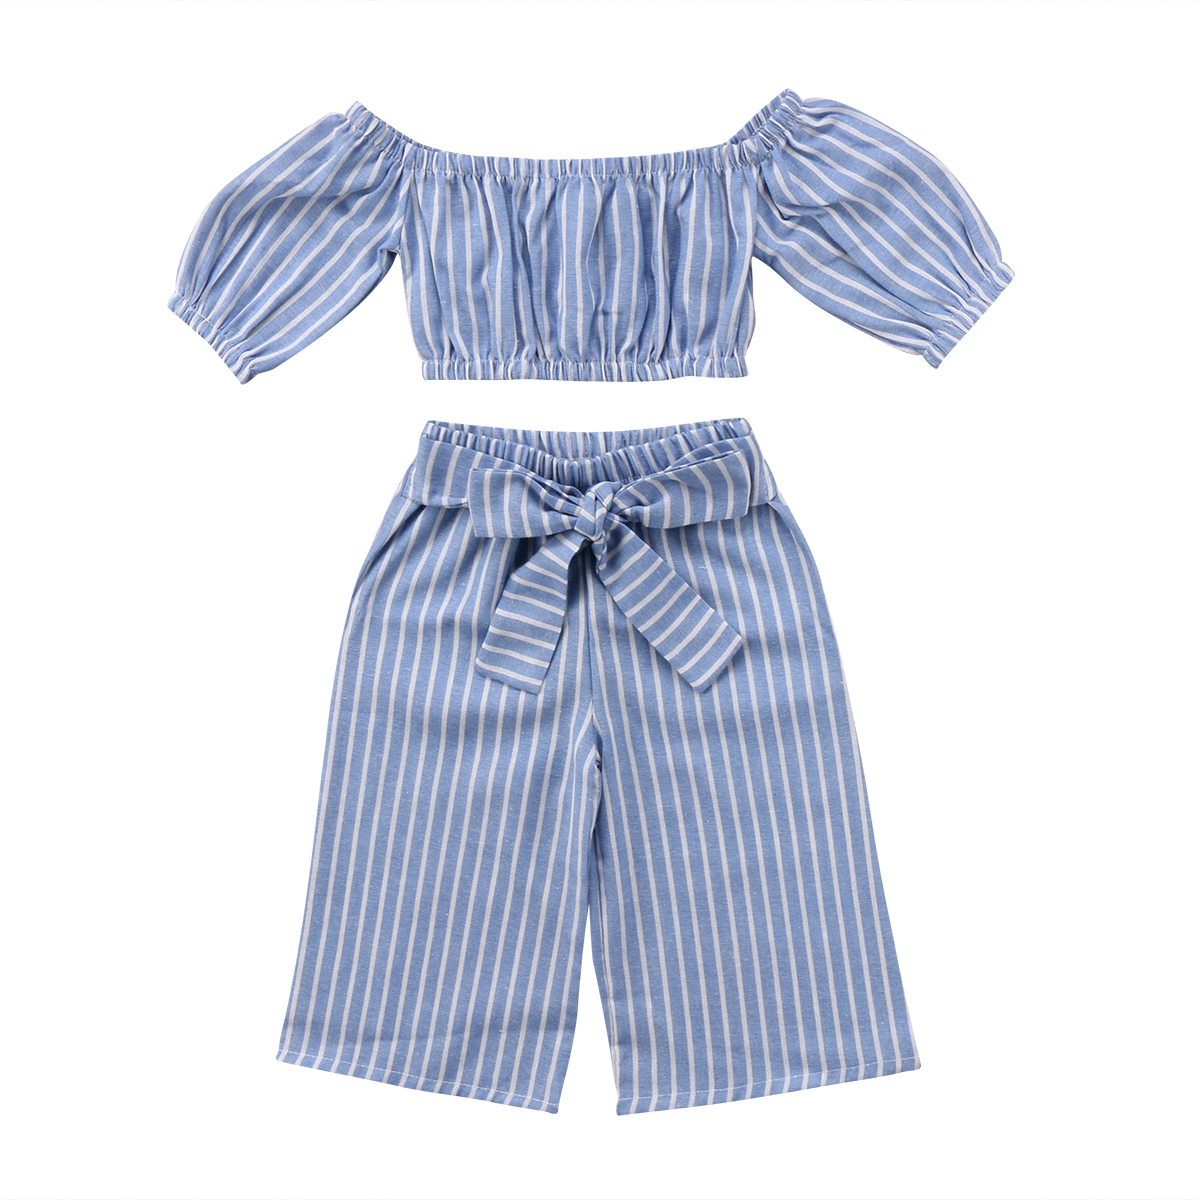 Clothing Sets Adaptable 2019 Canis Summer 2pcs Kids Baby Girl Boy Sleeveless Tassel Tops Floral Short Pants Outfit Beach Wear Set Summer 0-4y